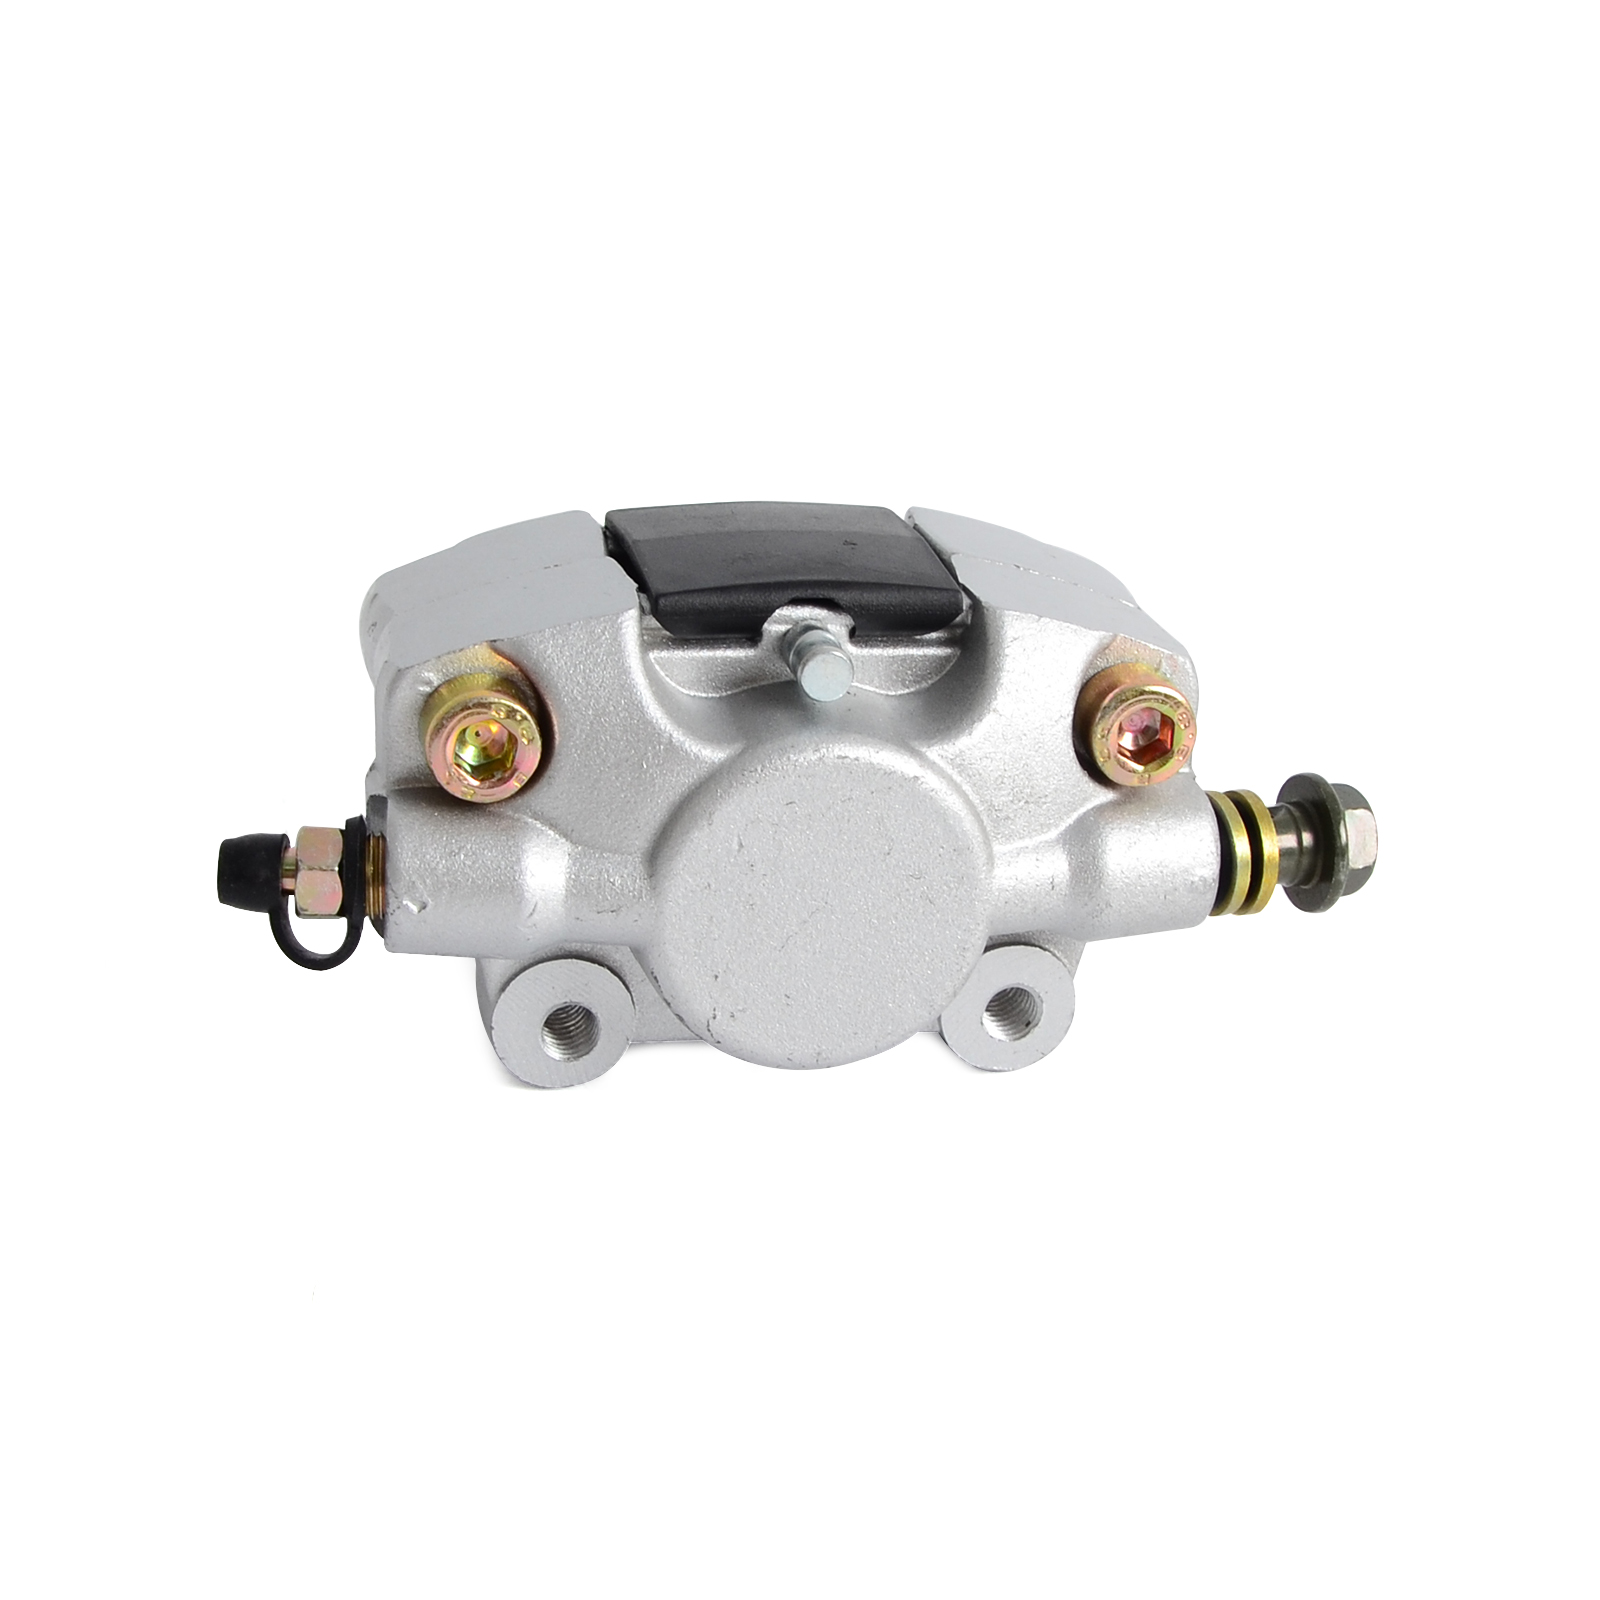 Quad ATV bike powerful hydraulic rear brake caliper